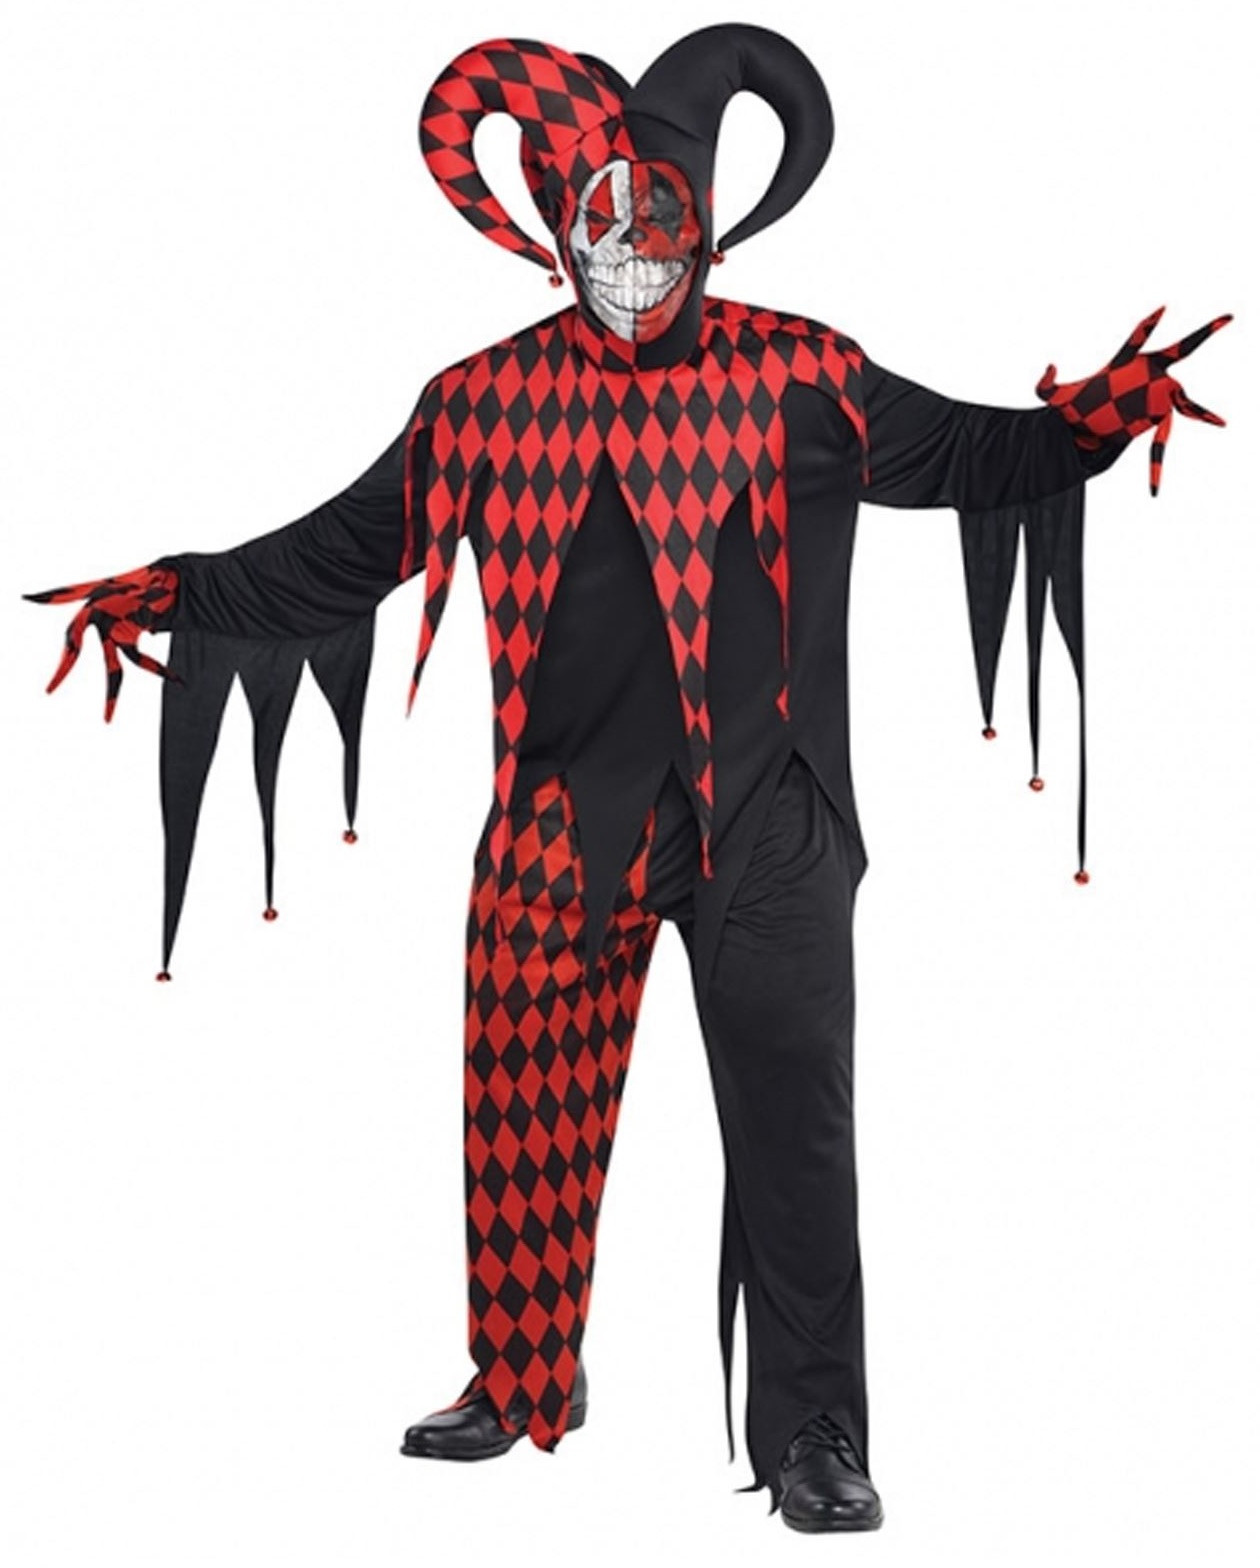 Party Centre - Adult Krazed Jester Halloween Costume  sc 1 st  Mumzworld & Adult Krazed Jester Halloween Costume